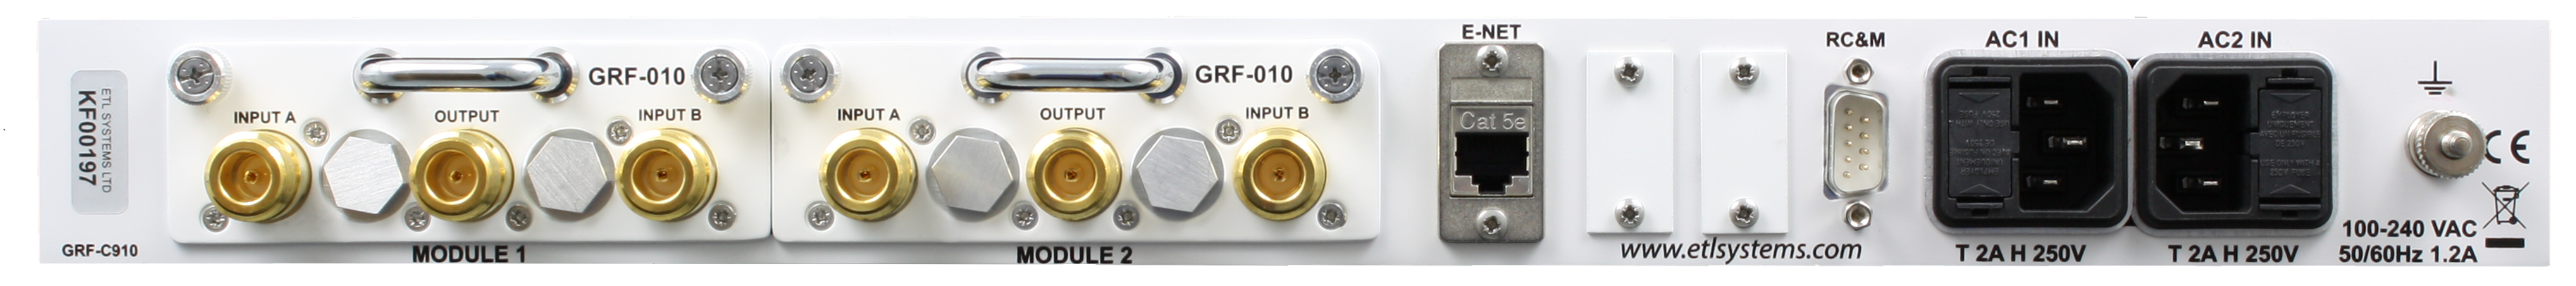 Griffin Redundancy Switch Chassis L-band & RF SPTD options 1 x 2 & 2 x 1 - GRIFFIN